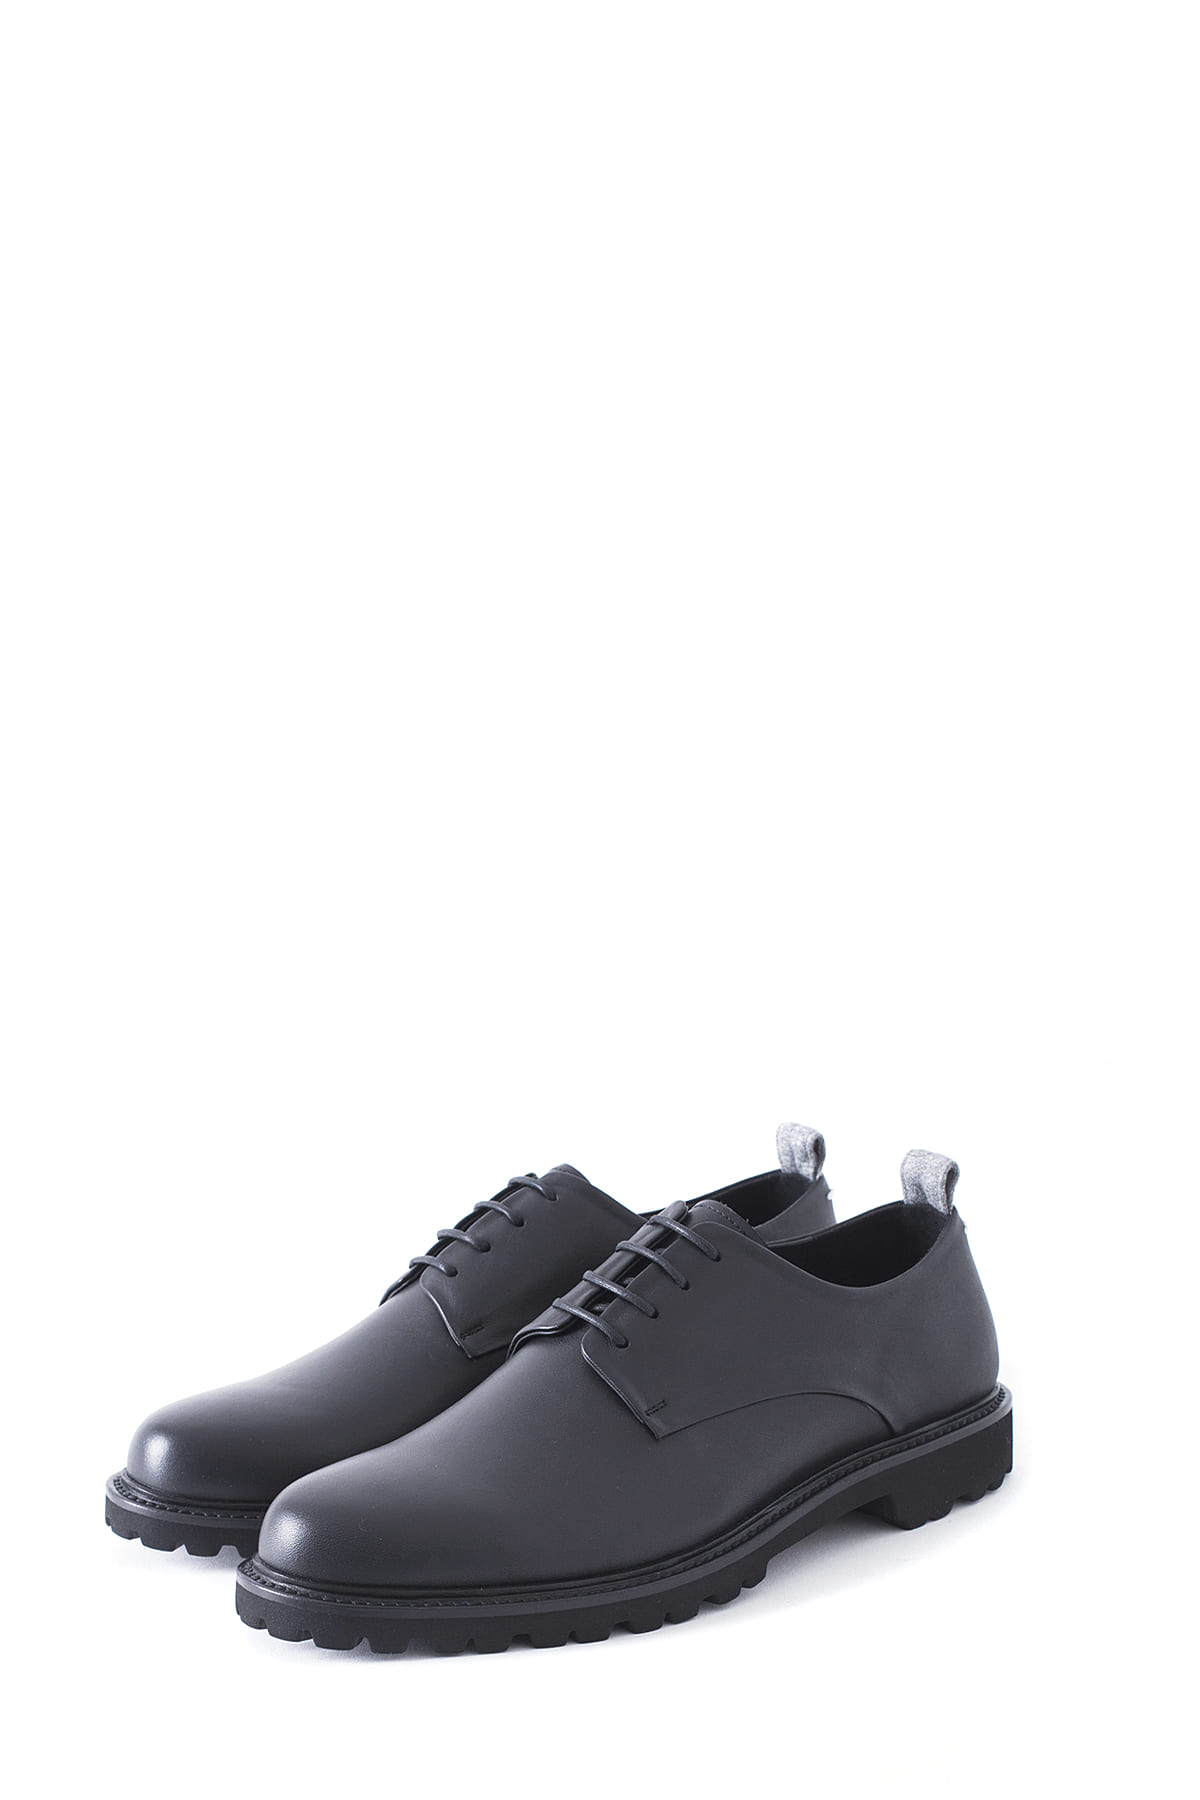 AECA WHITE : Oxford (Black)